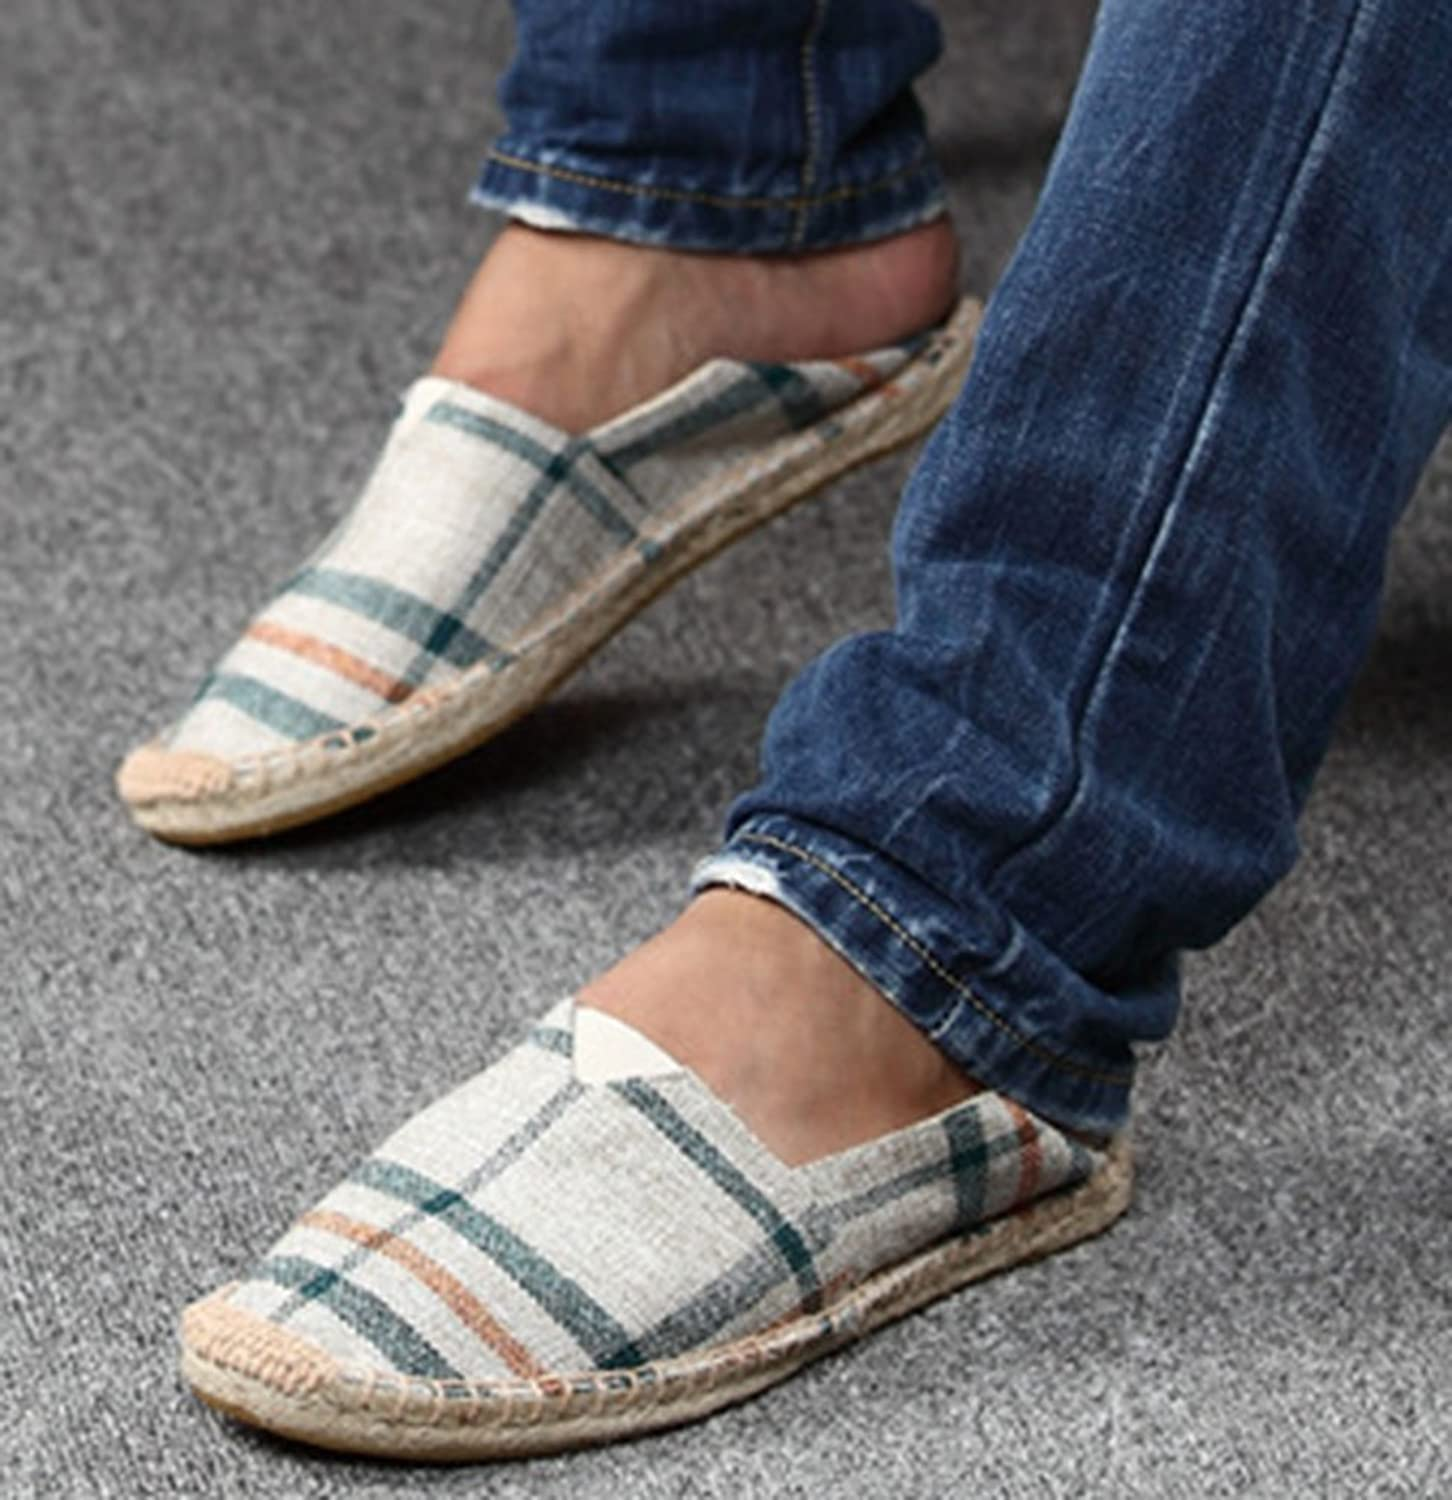 YOUJIA Unisex Plaid Checked Espadrilles Slip On Canvas Shoes Casual Beach  Summer Flats: Amazon.co.uk: Shoes & Bags